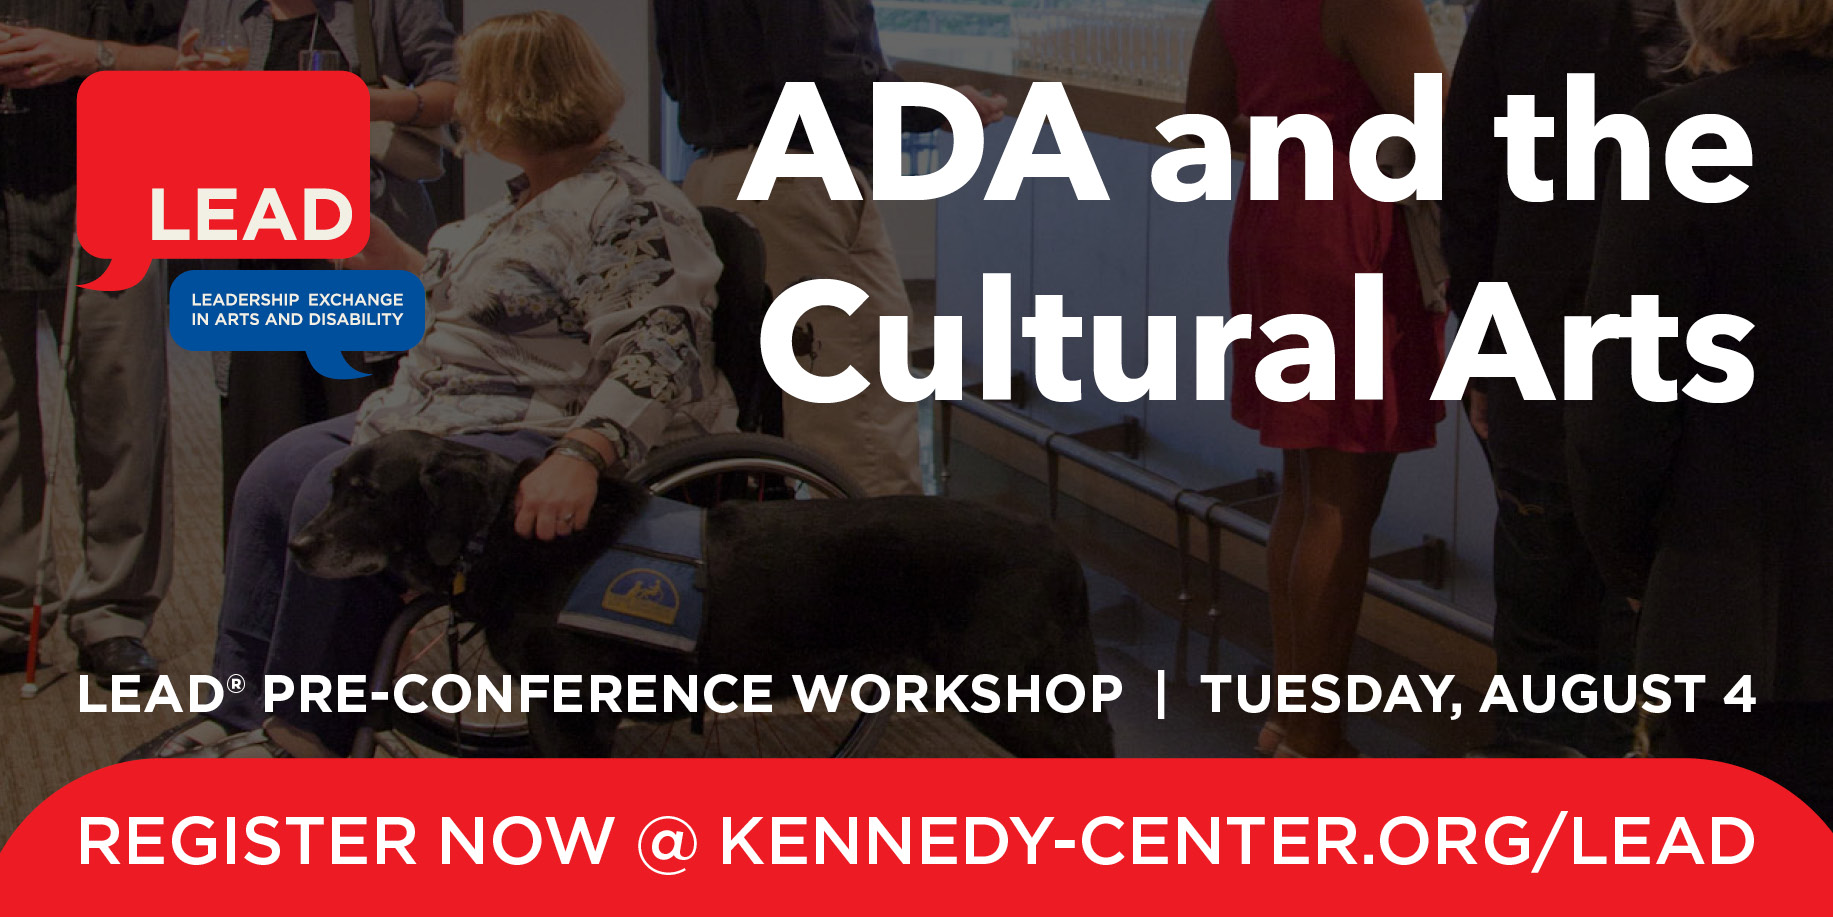 Pre-Conference Graphic: ADA and the Cultural Arts